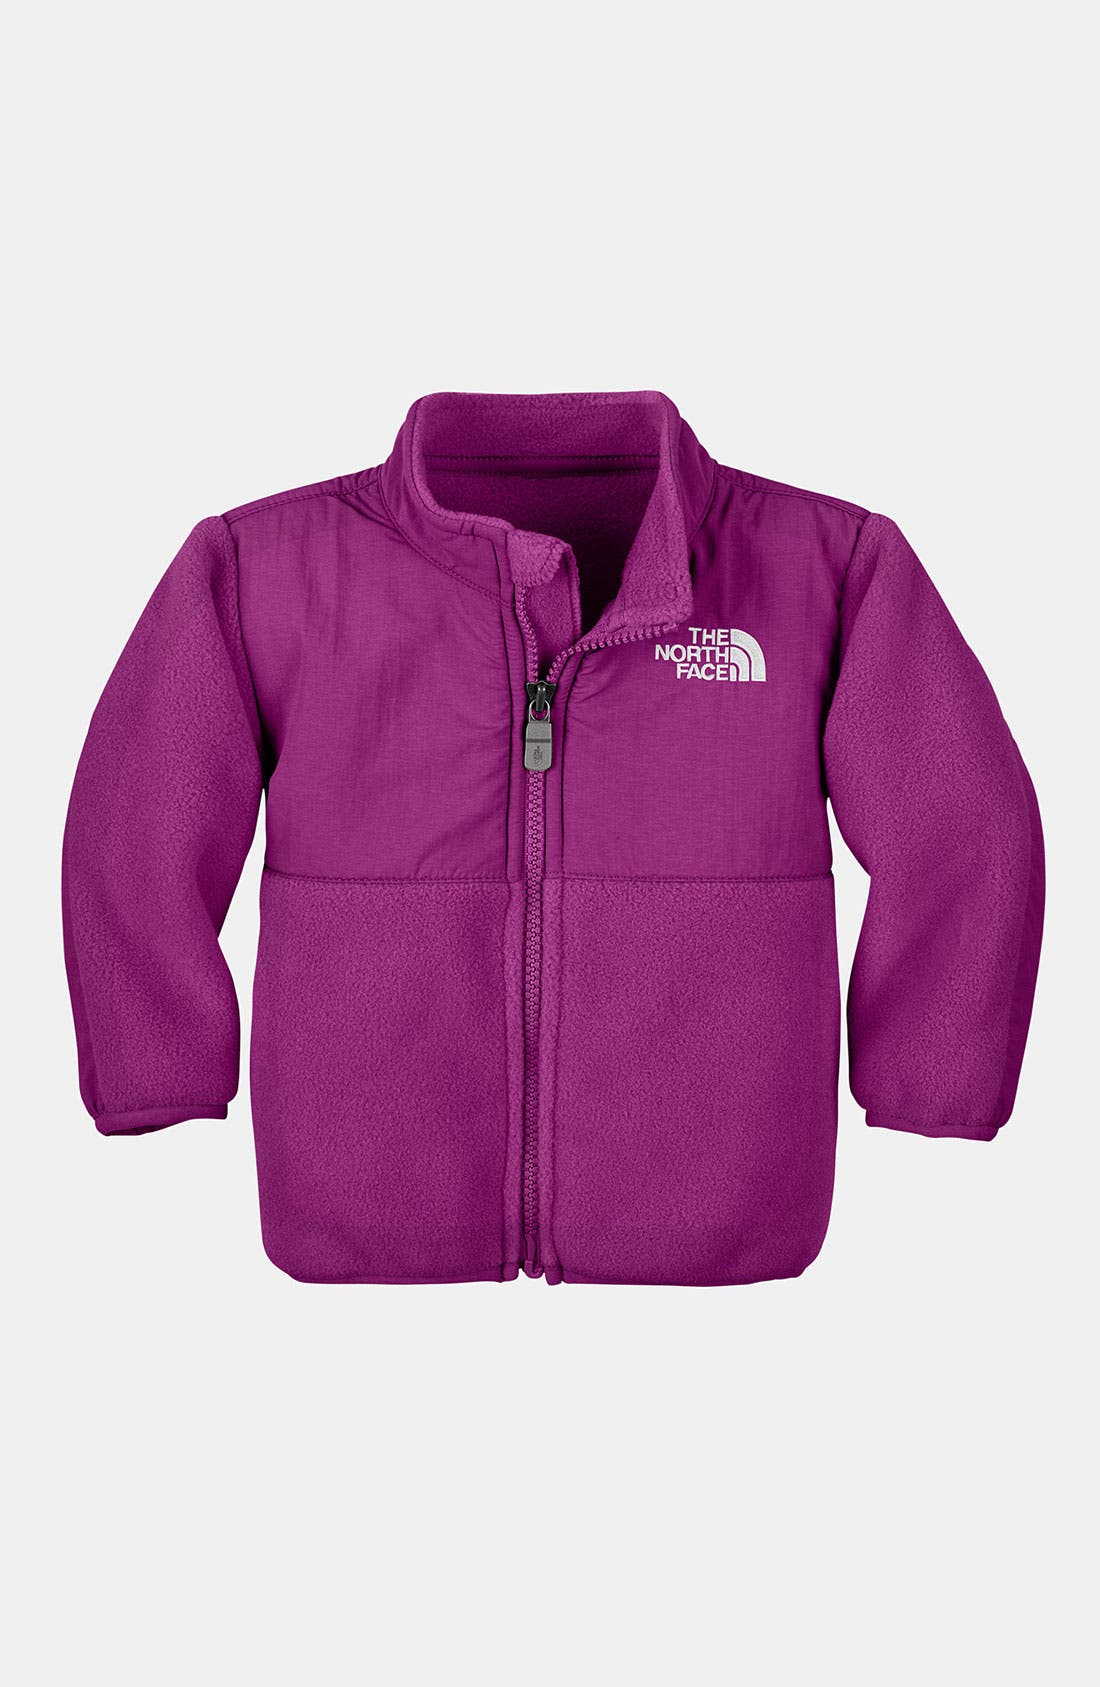 Main Image - The North Face 'Denali' Jacket (Infant)